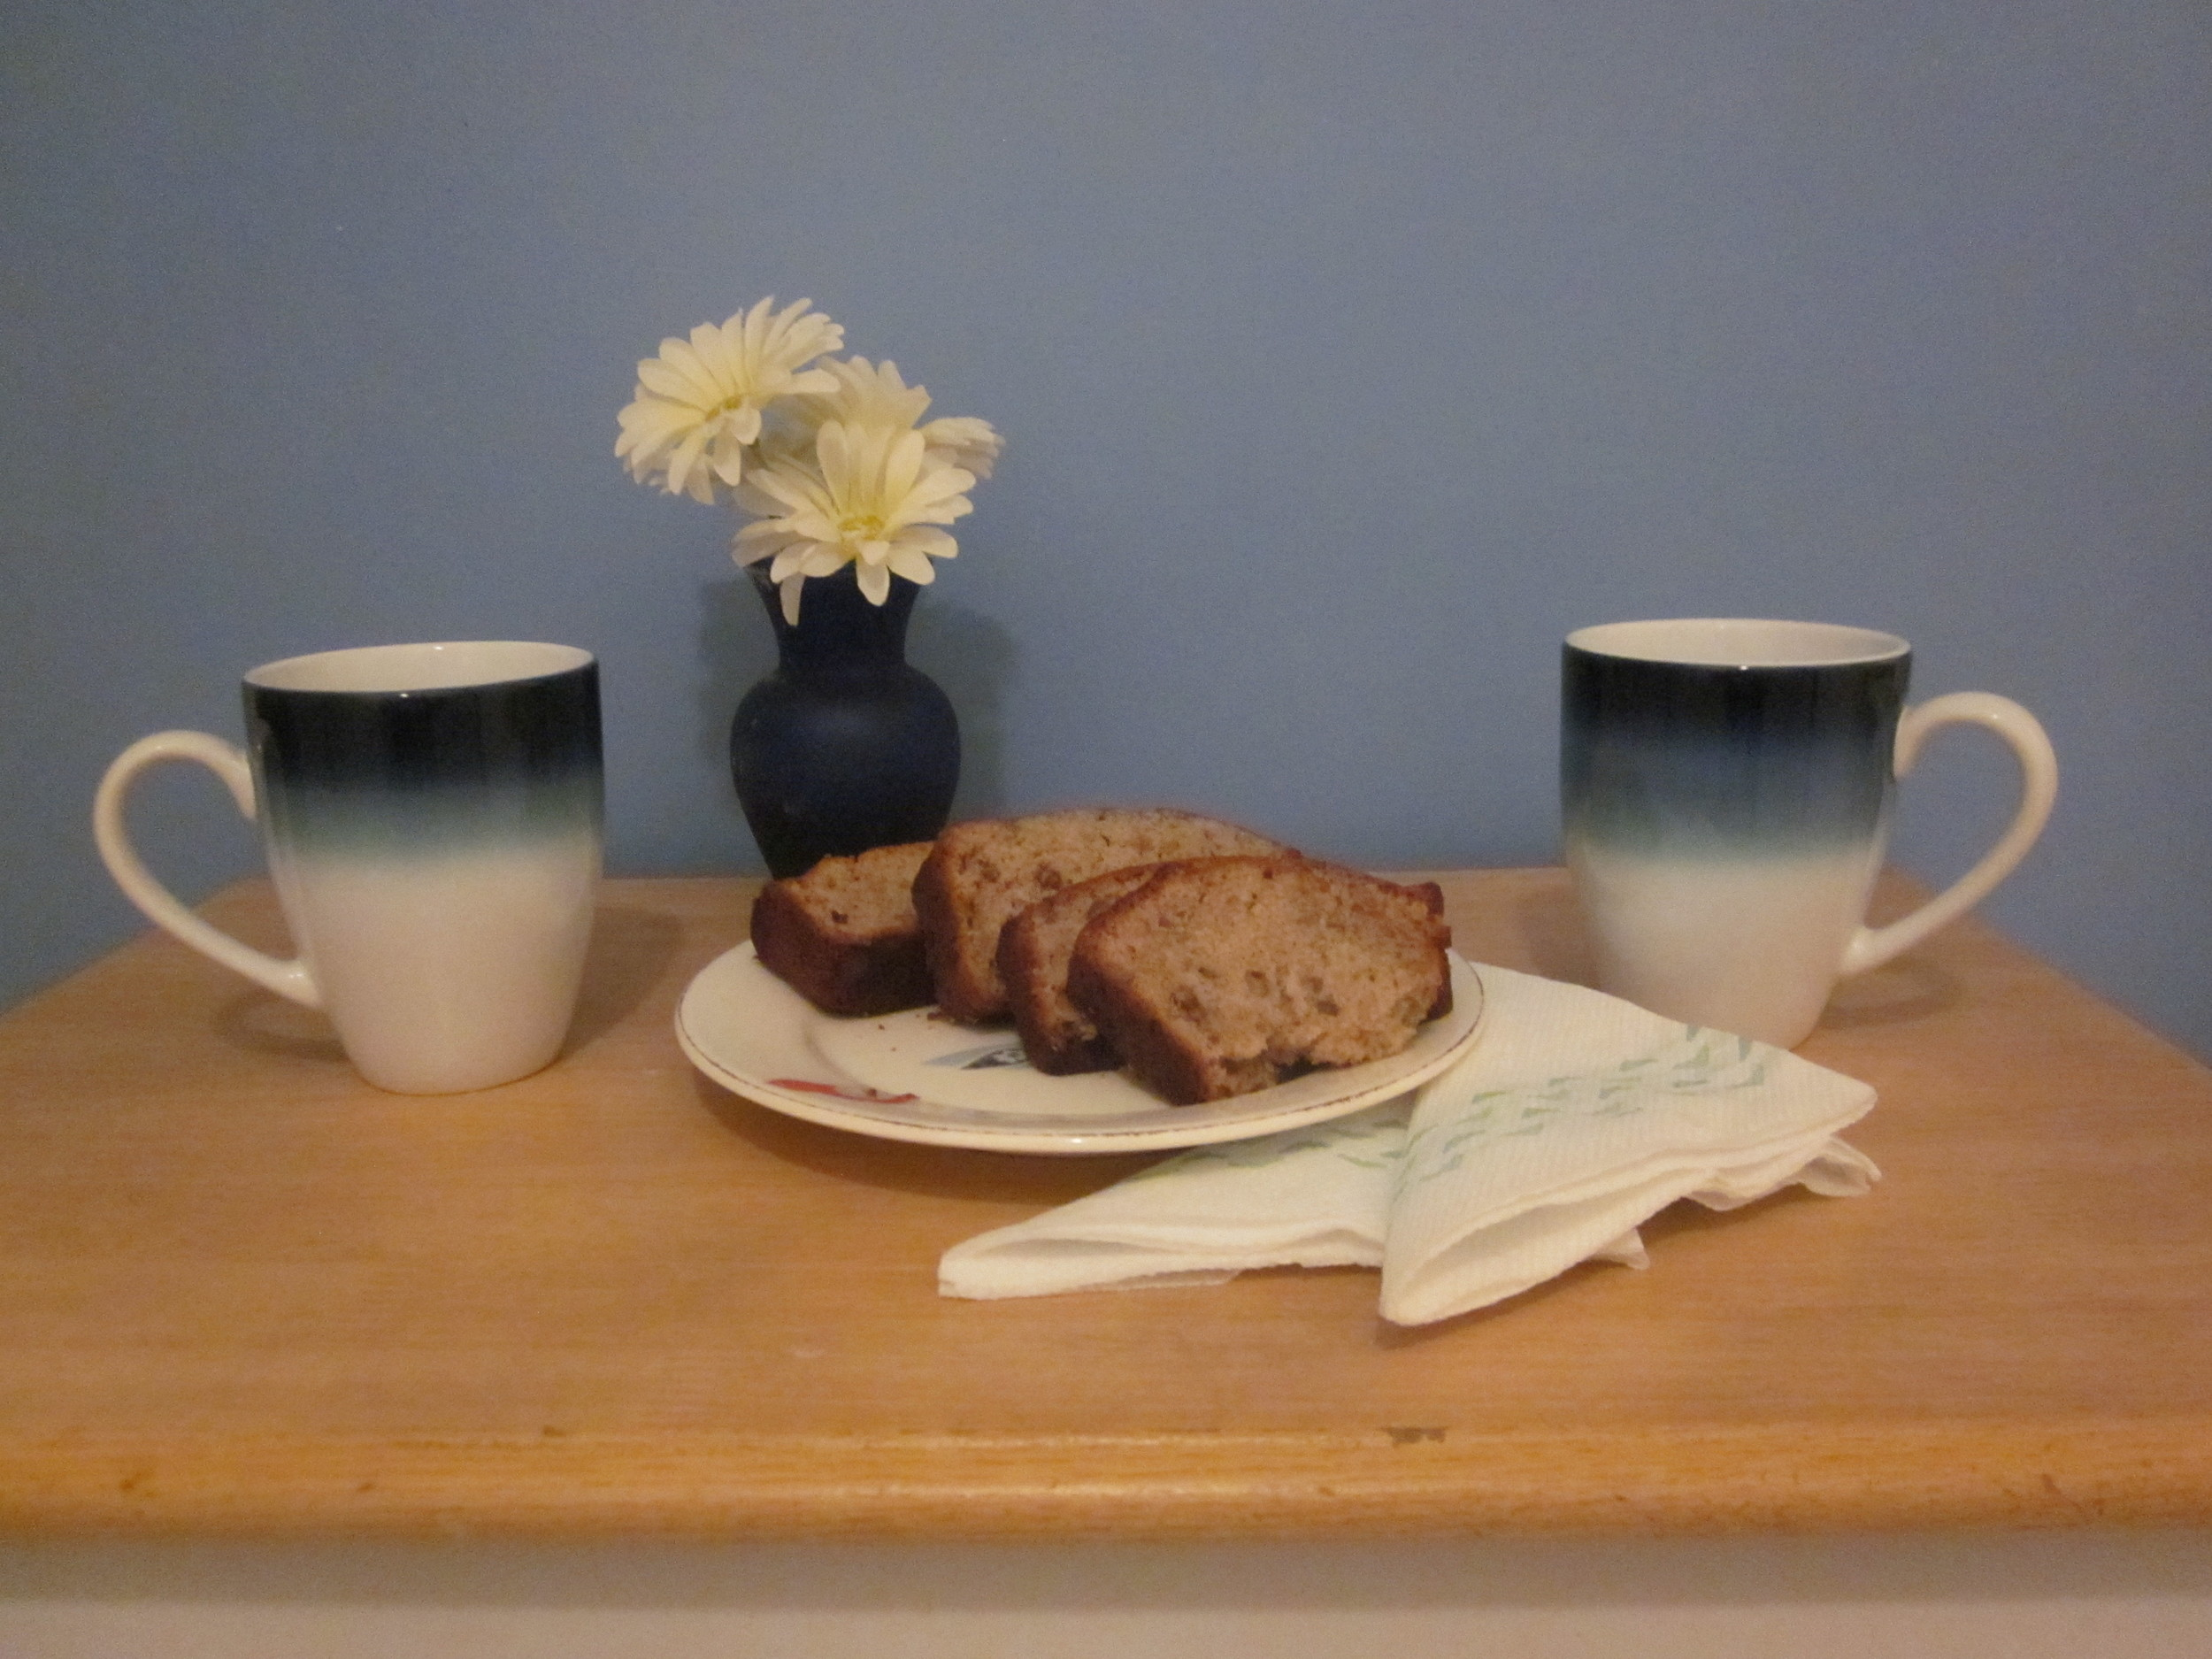 LOVE MATCH -- A WONDERFUL WAY TO START THE DAY Coffee is made for sharing in these matching blue ombre mugs.